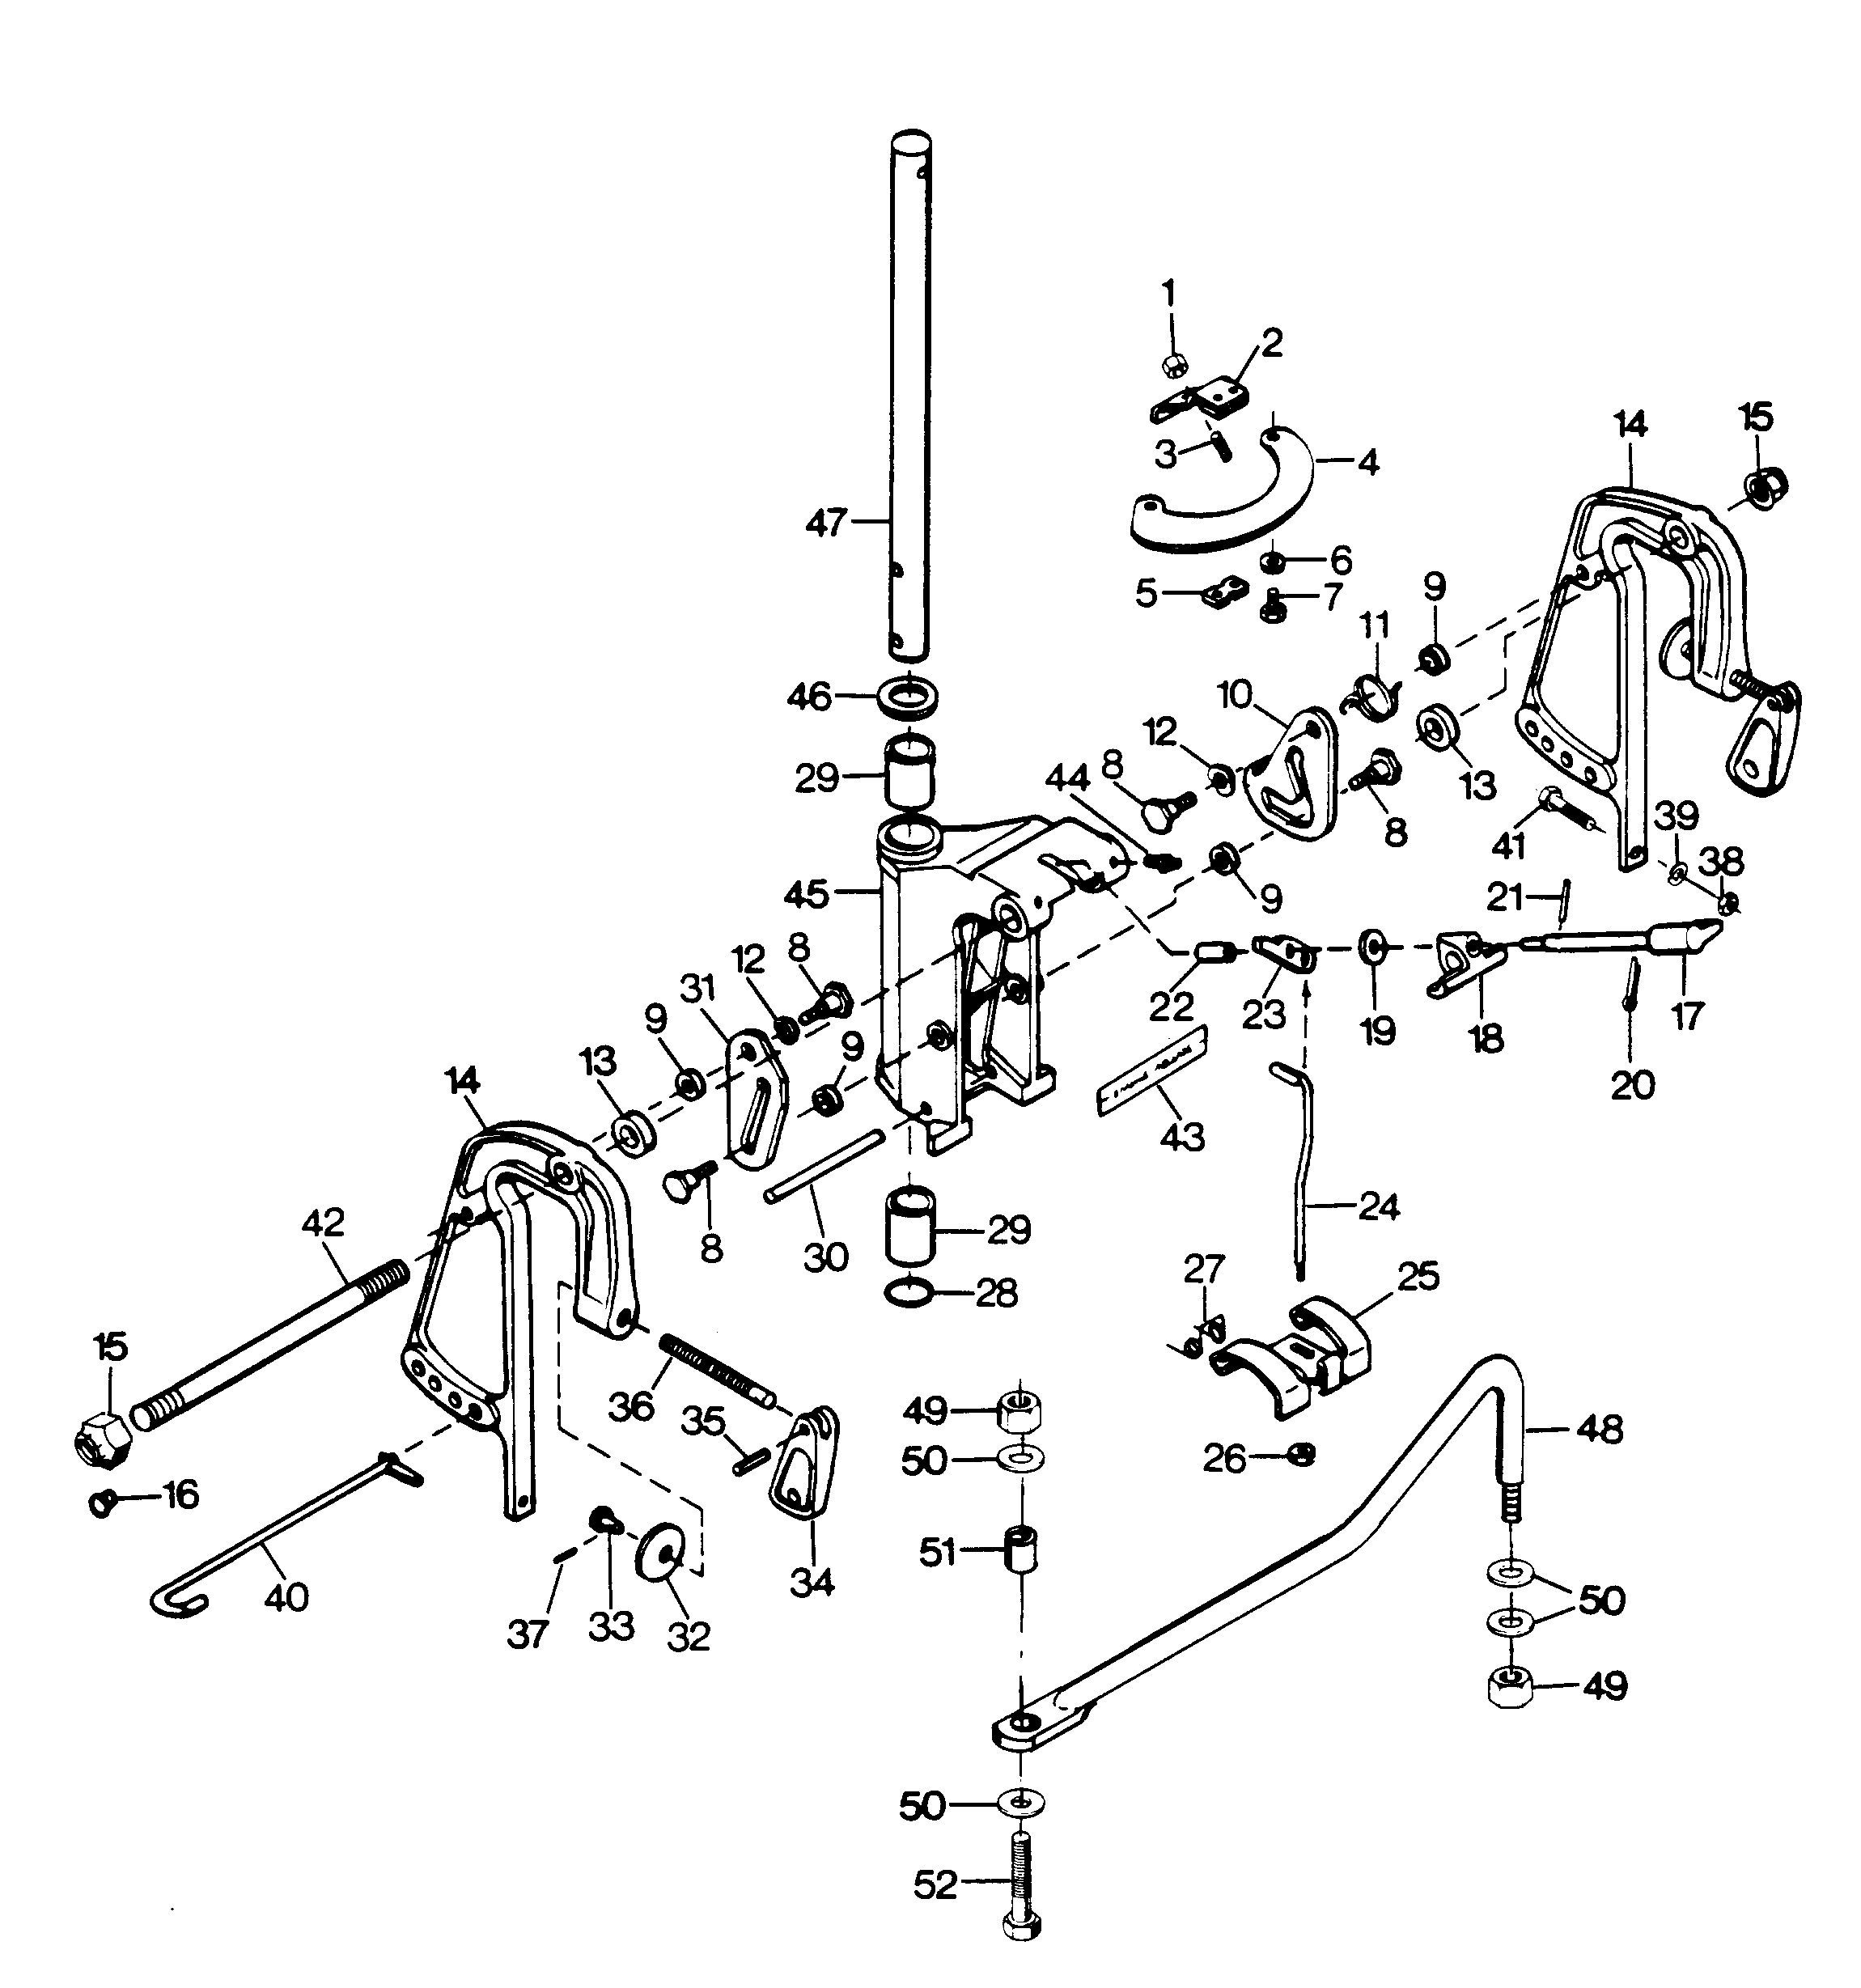 1996 force outboard motor diagram